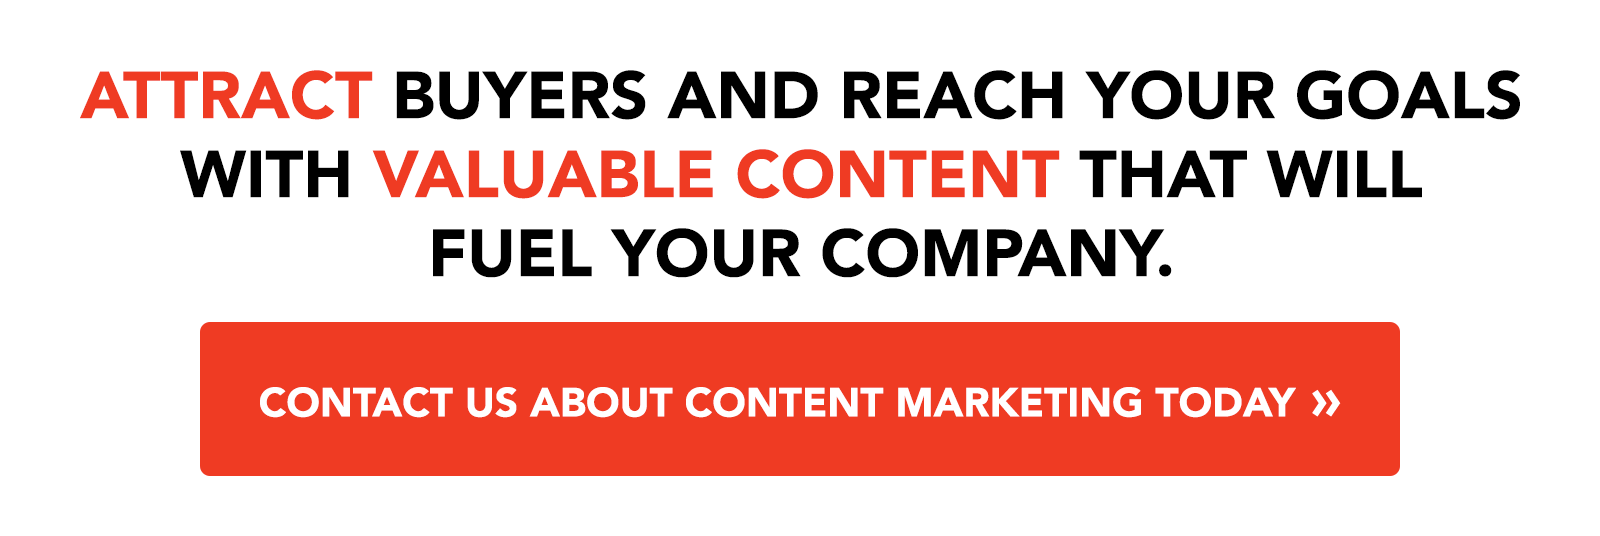 Contact us about Content Marketing today